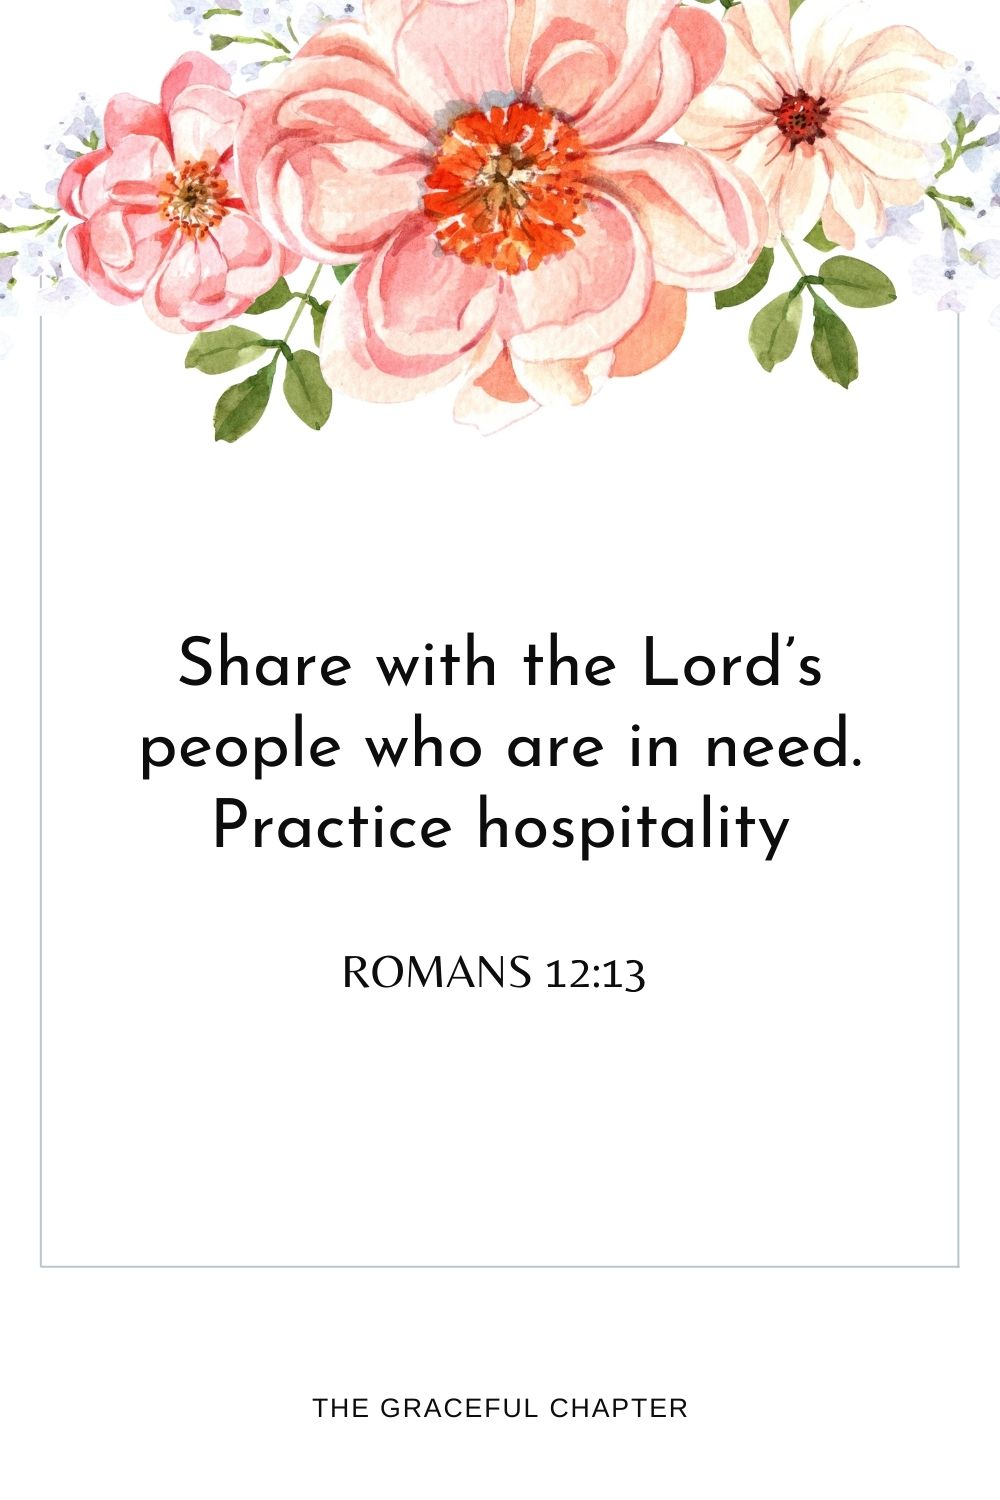 Share with the Lord's people who are in need.Practice hospitality. Romans 12:13